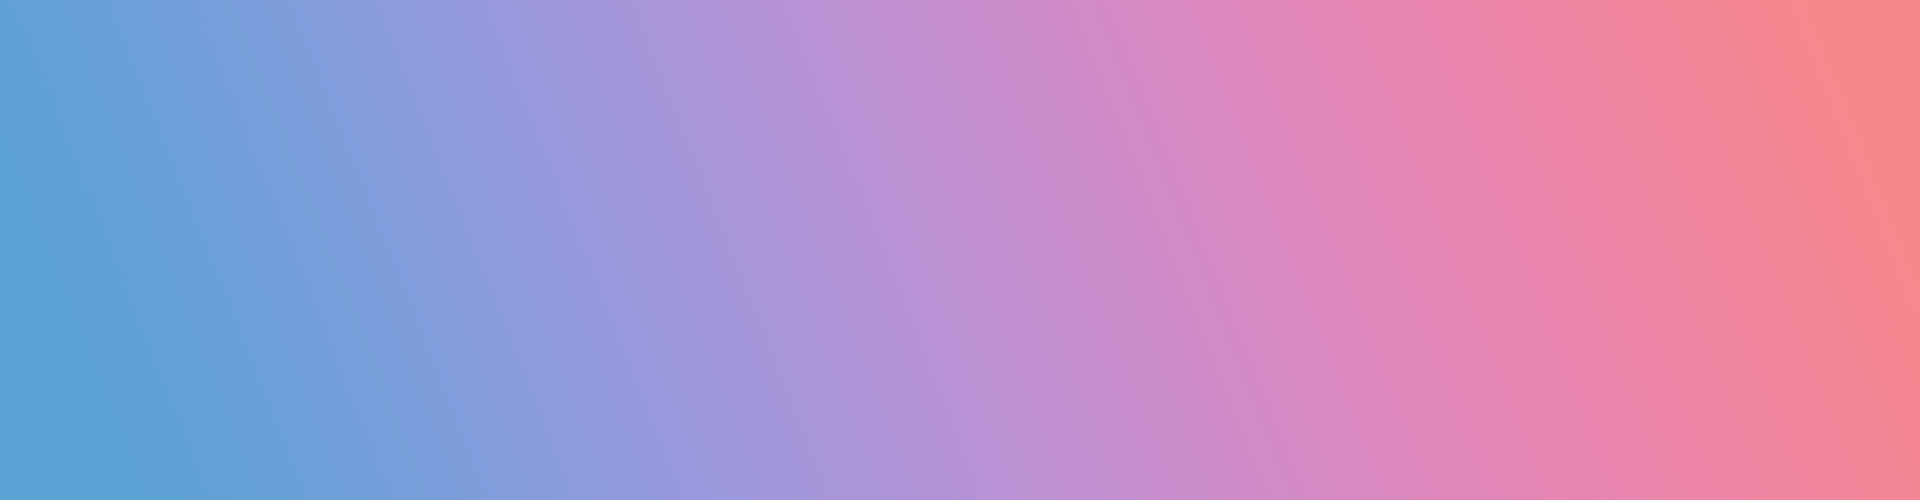 VIDA gradient blue to pink